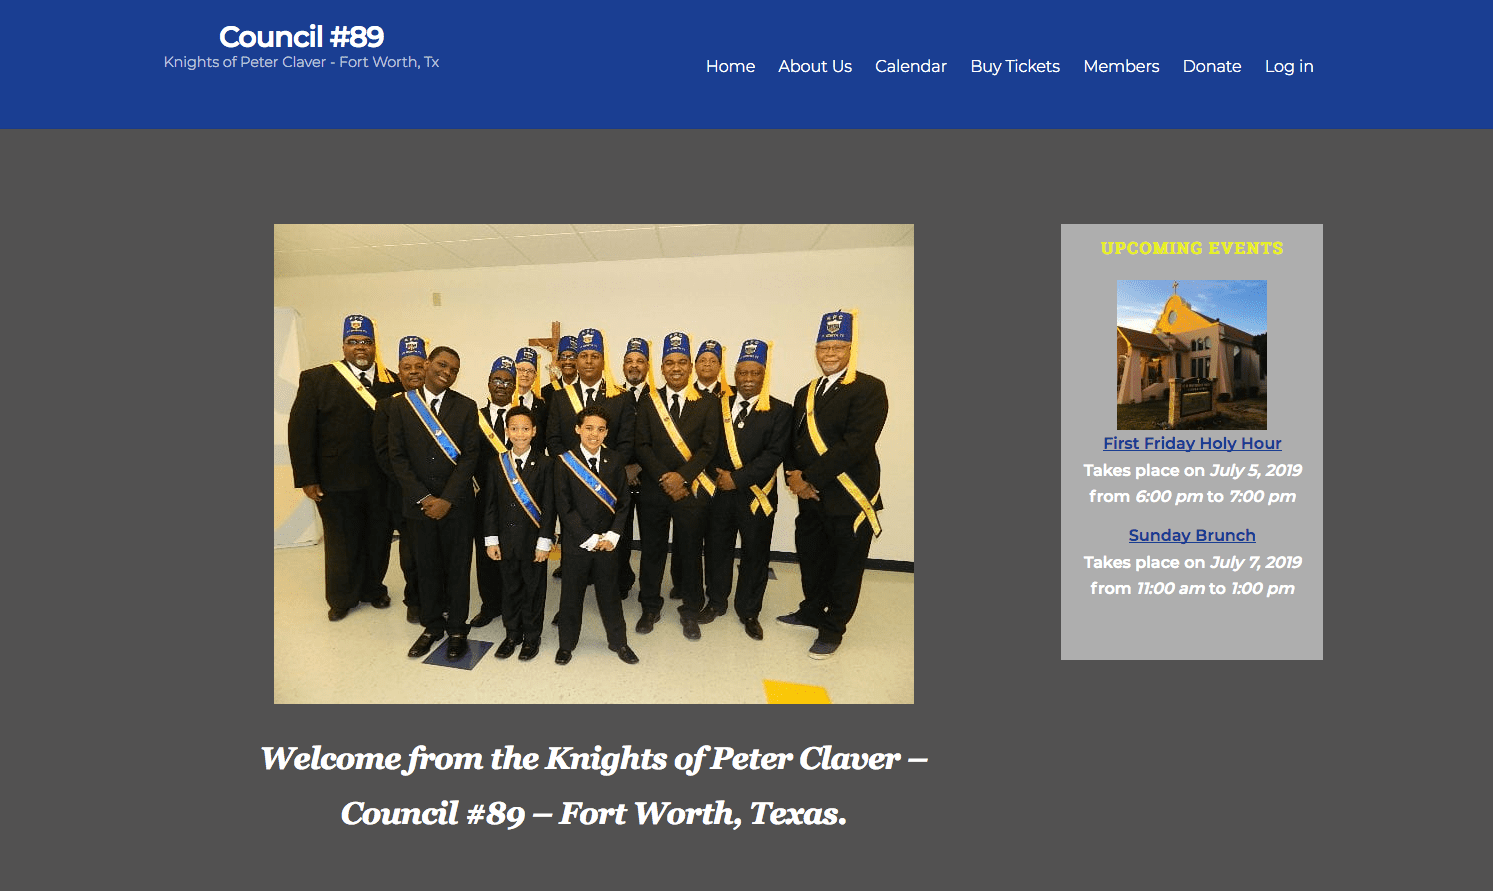 Knights of Peter Claver - Fort Worth